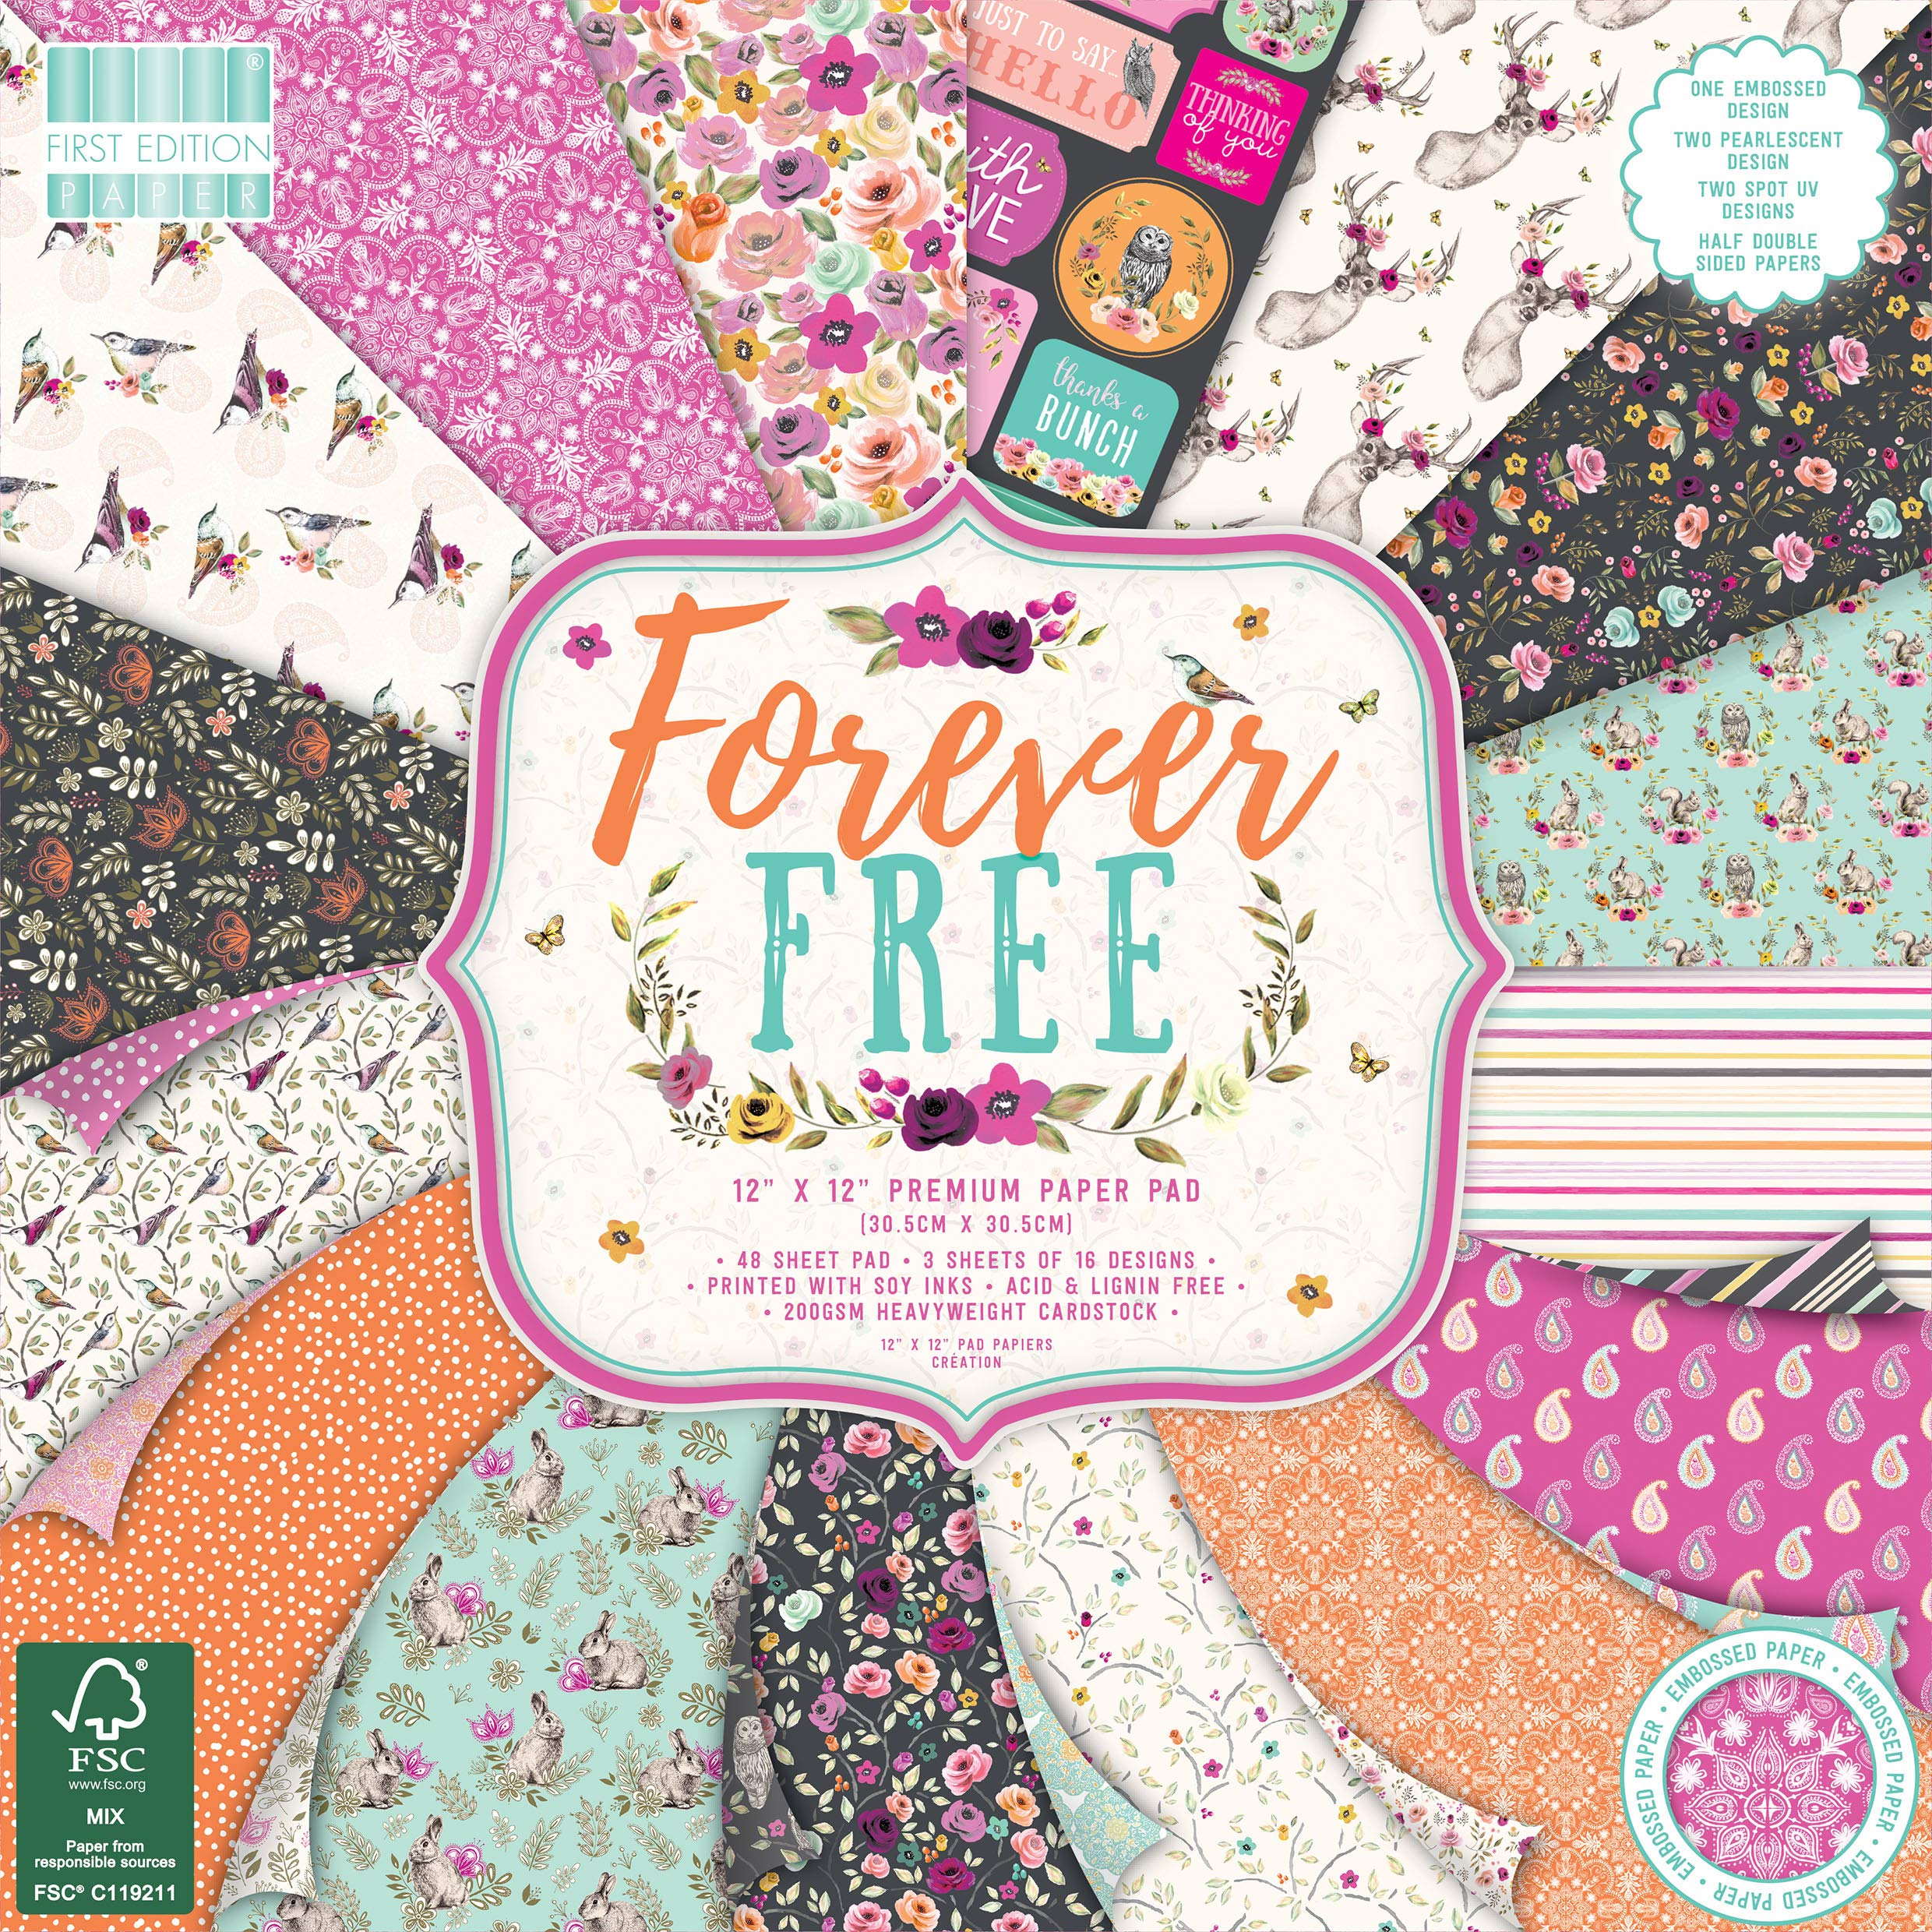 First Edition Forever Free Premium Paper Pad 12''x12'' 48 Sheets (FSC)